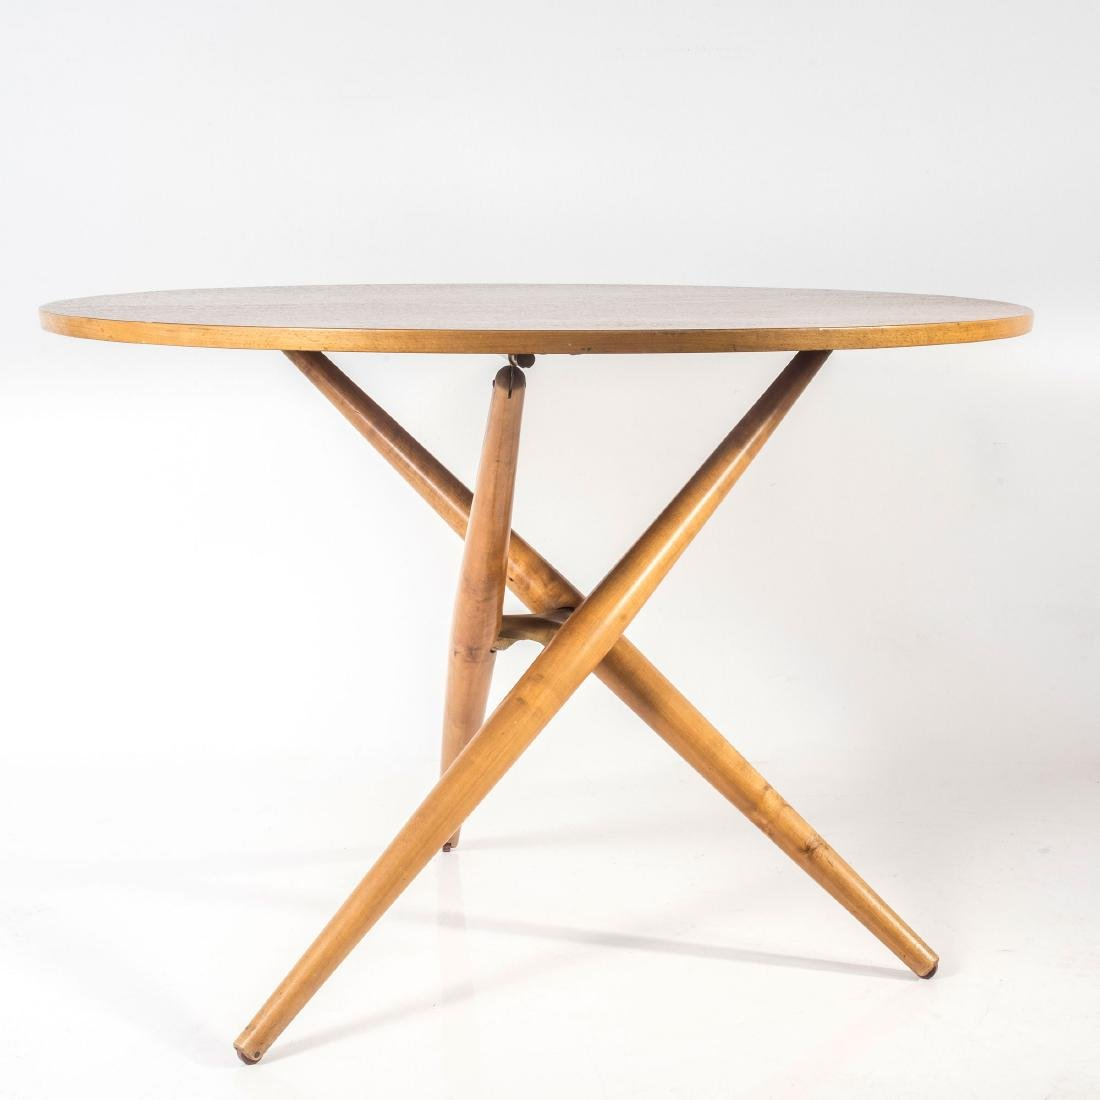 'S.T' coffee table, 1954 - 2